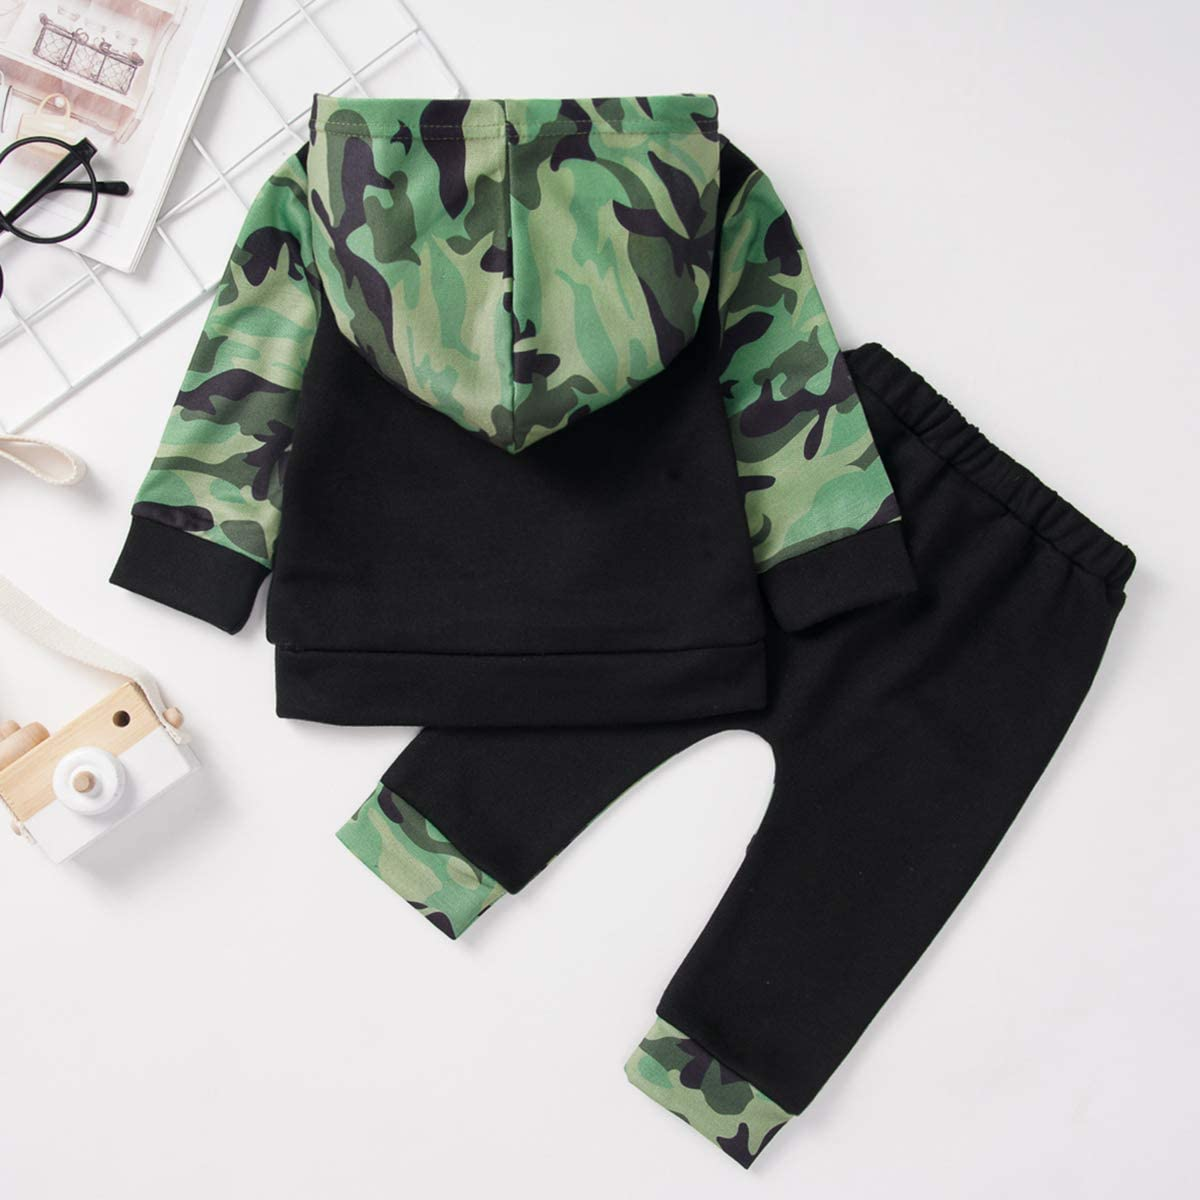 Pants Clothes Set Camouflage Sweatsuit Outfit Short Sleeve Hoodie Top Baby Boys Tracksuit